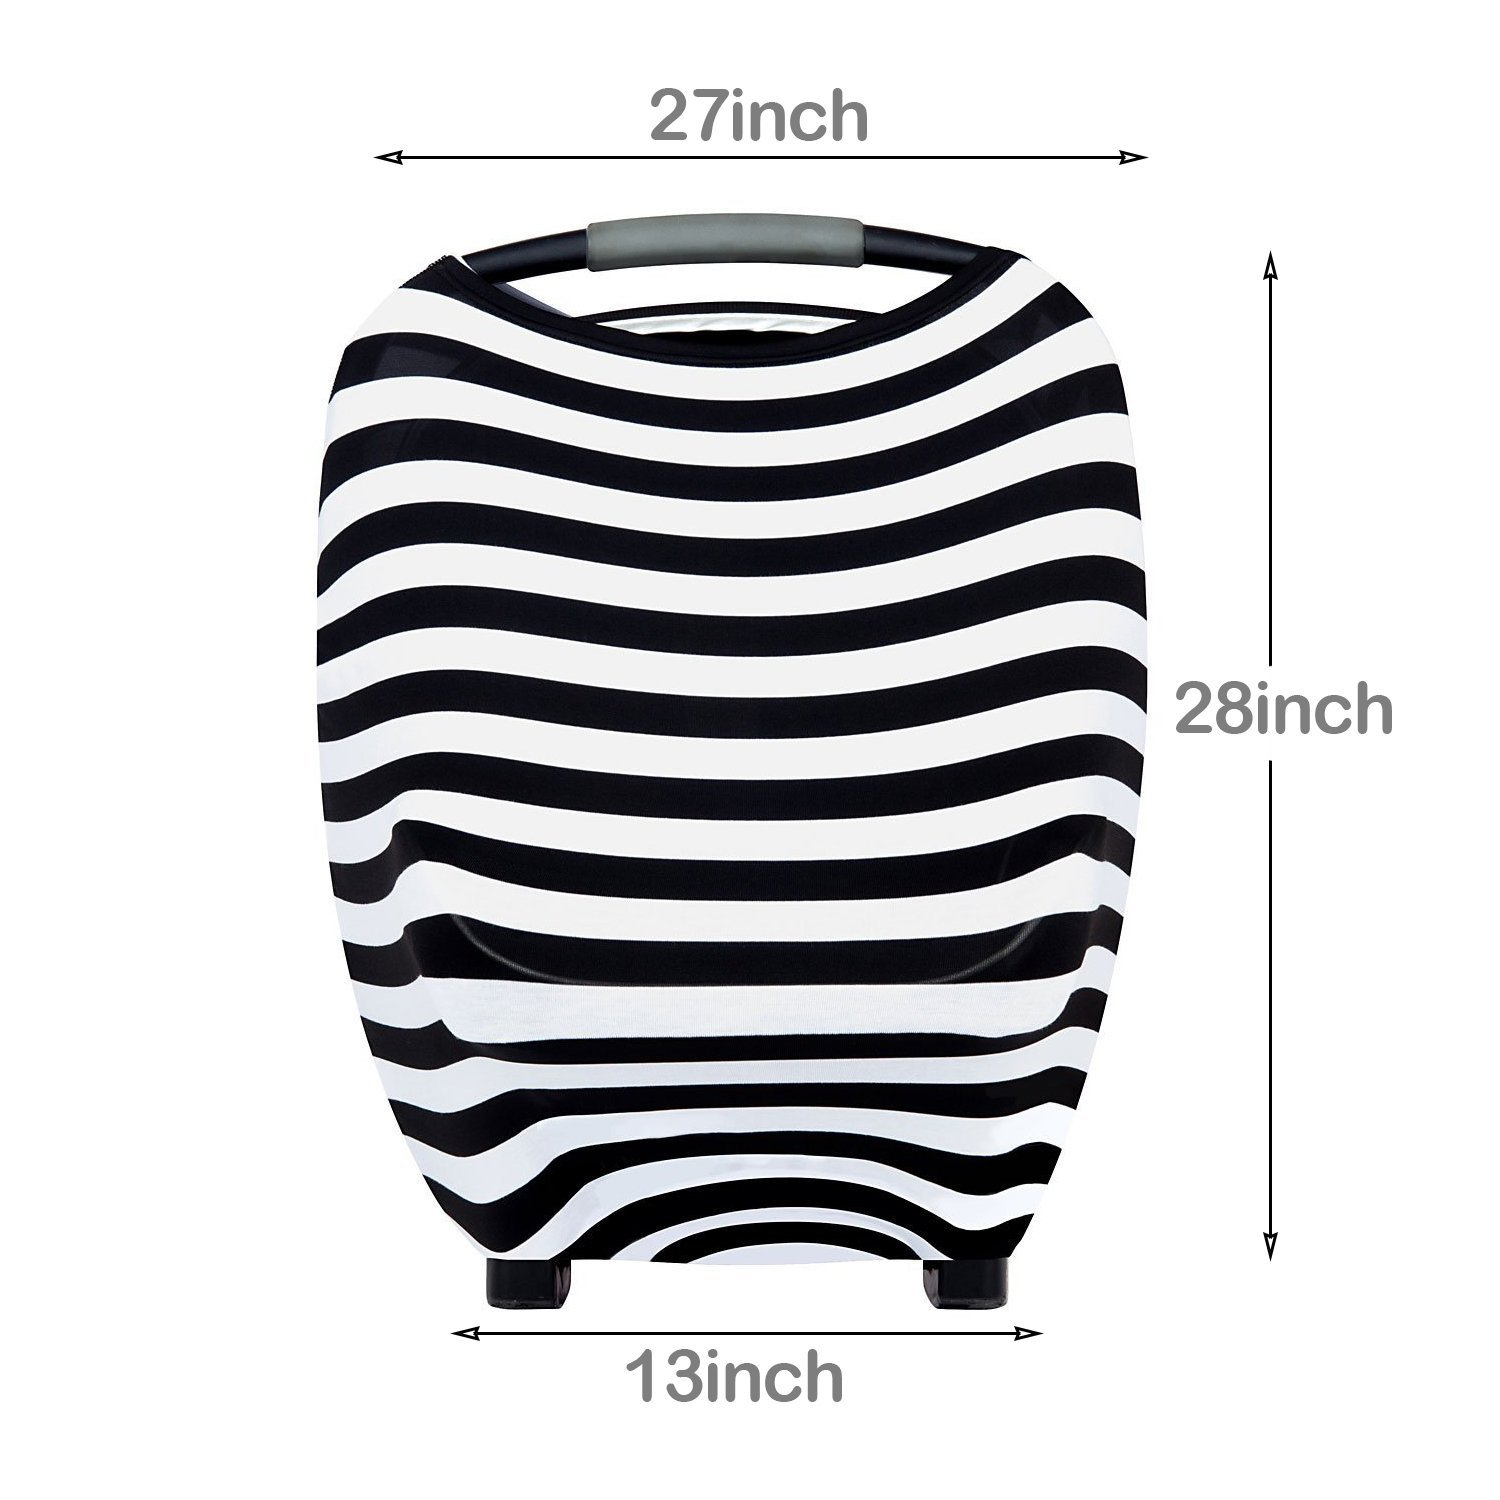 Best Multi-Use Infinity Stretchy Shawl 2 pack Shopping Cart Baby Car Seat Canopy Carseat Covers for Girls and Boys BeYumi Nursing Breastfeeding Cover Scarf Stroller